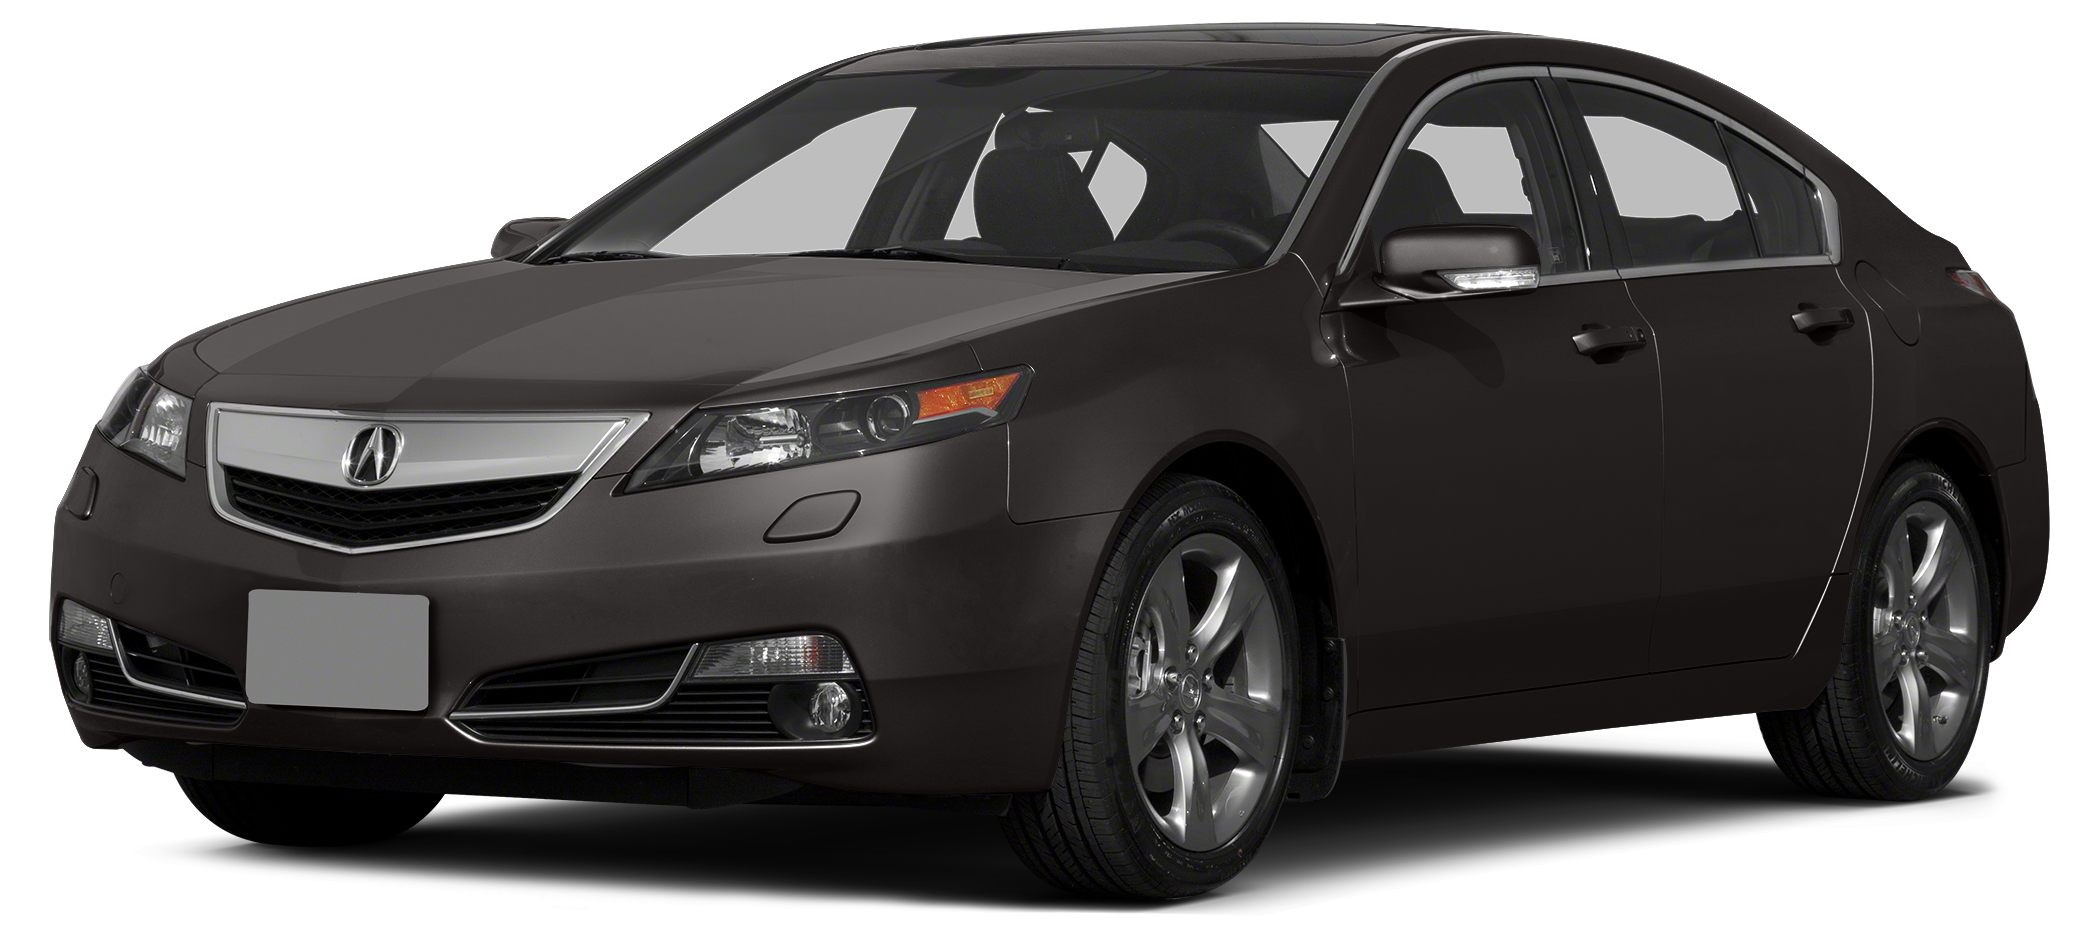 2014 Acura TL 37 Technology Miles 30146Color Graphite Luster Metallic Stock A6020A VIN 19UU